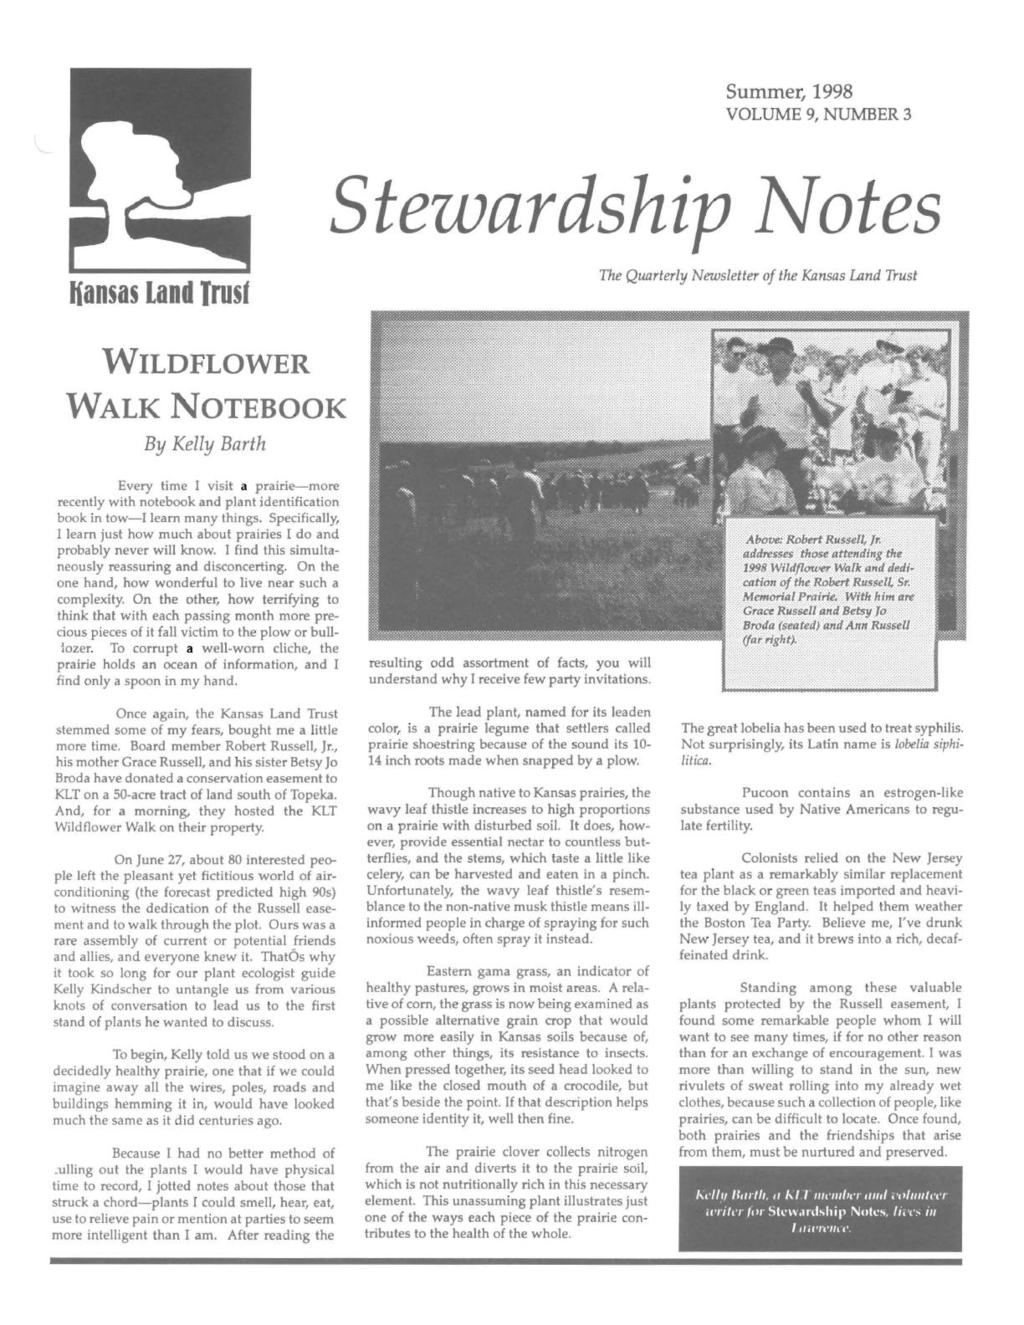 Summer, 1998 VOLUME 9, NUMBER 3 Stezvardship }Votes Kansas land Trusf The Quarterly Newsletter of the Kansas Land Trust WILDFLOWER WALK NOTEBOOK By Kelly Barth Every time I visit a prairie-more